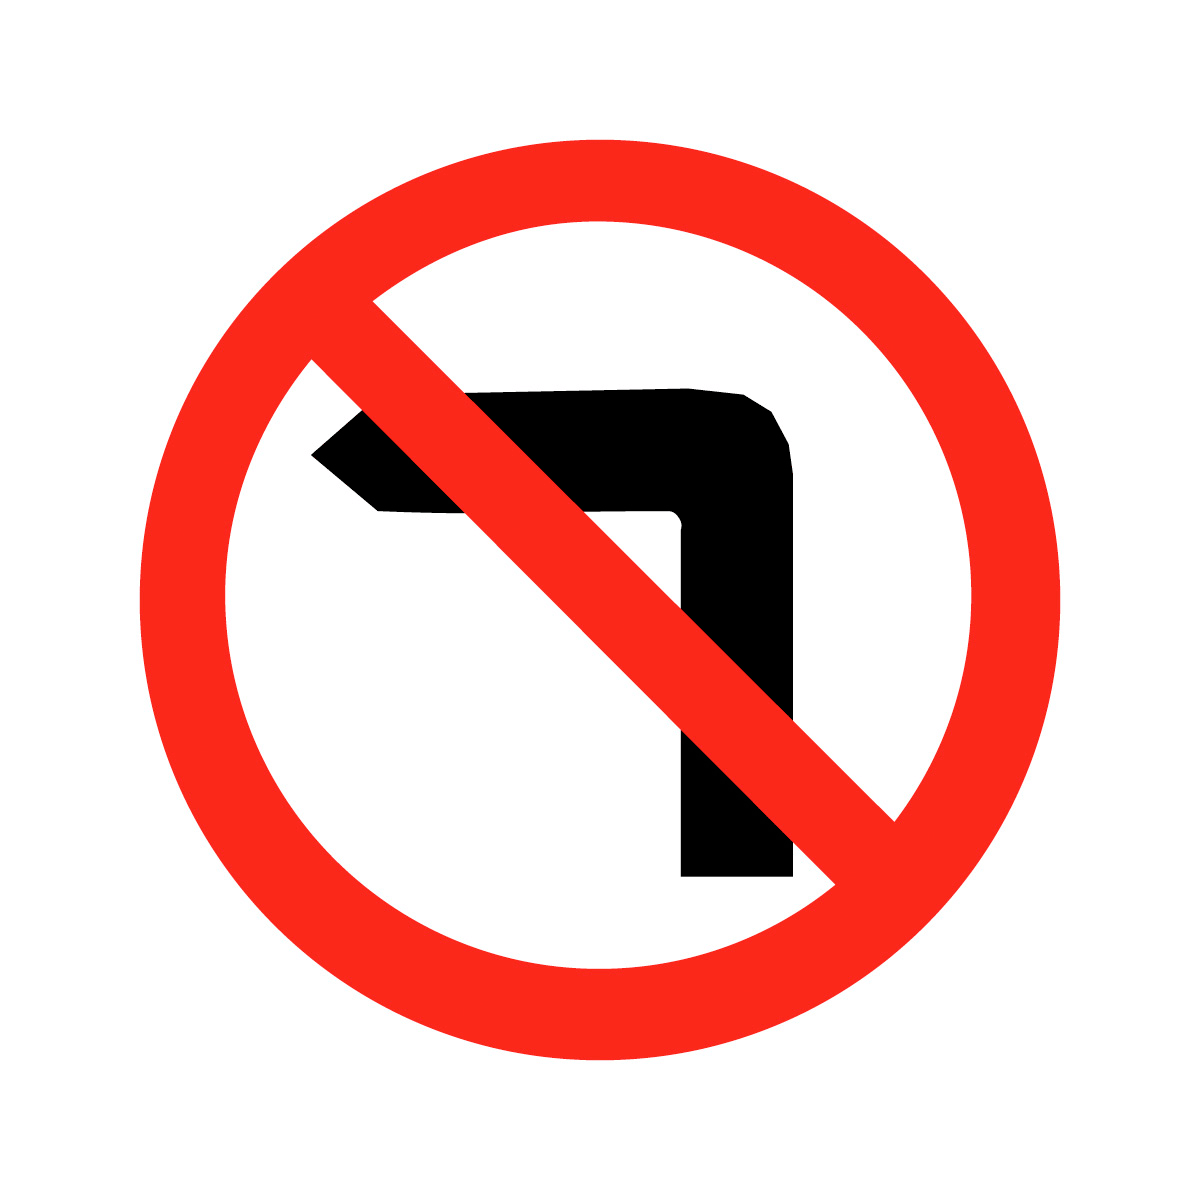 No Left Turn Safety Sign.